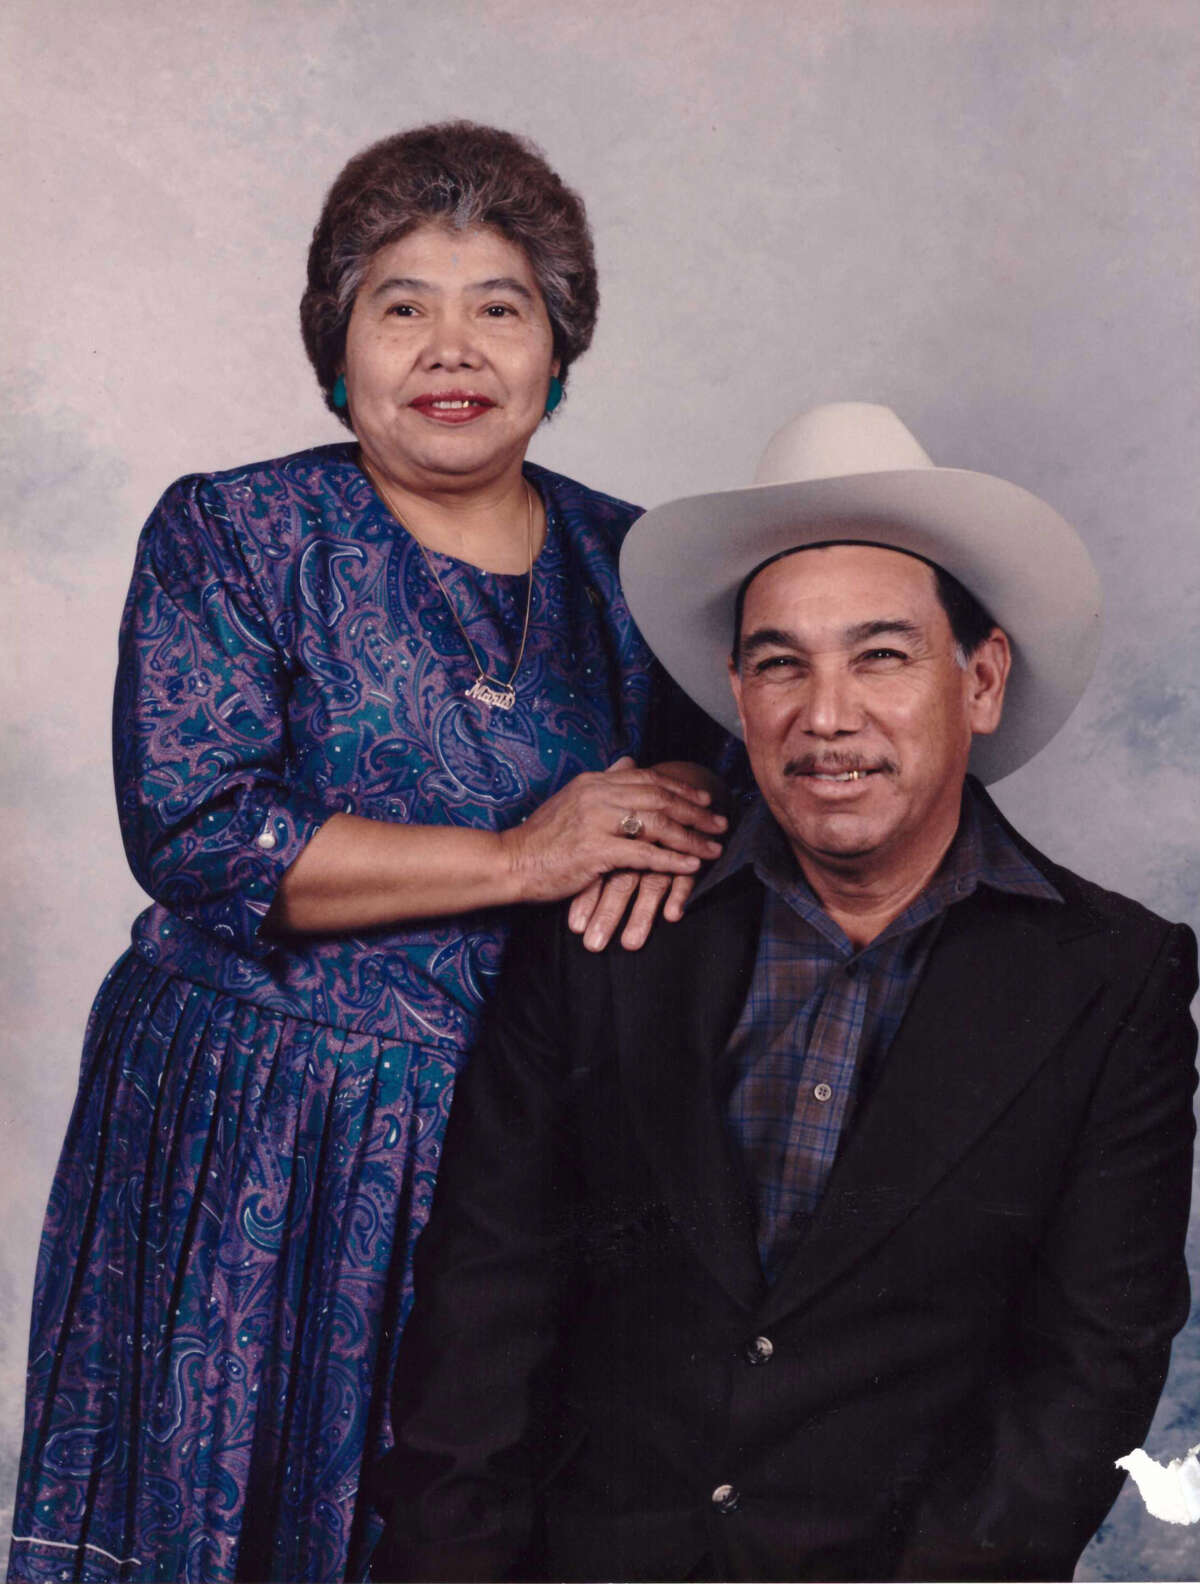 Rodolfo and Maria Gonzalez were chosen to serve as co-parade marshals for the annual upcoming Hart Days Parade. The couple will share the parade marshal title with three others.